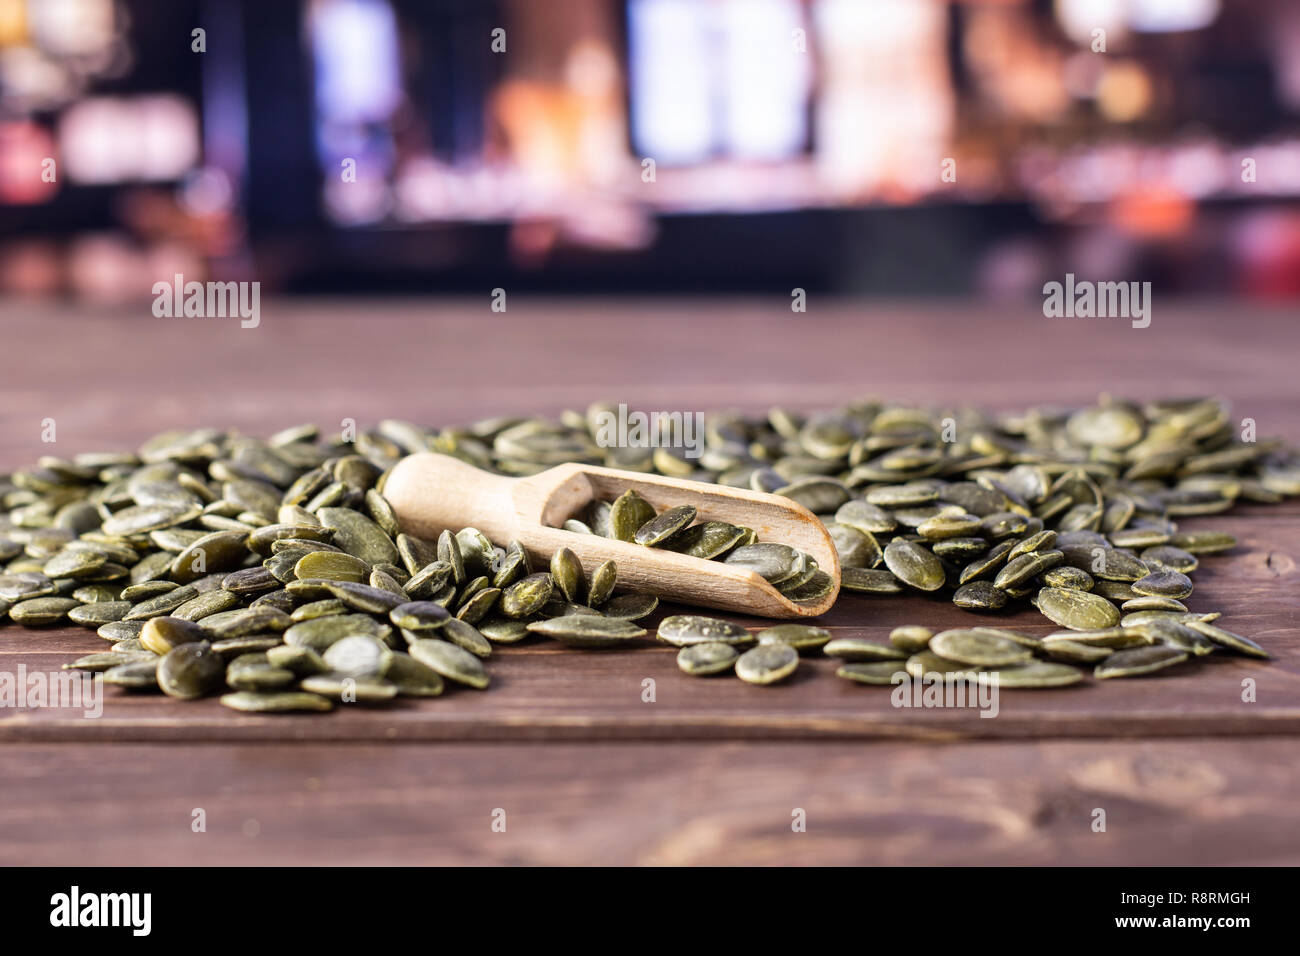 Lot of whole hulled pumpkin seeds with wooden scoop with restaurant in background Stock Photo